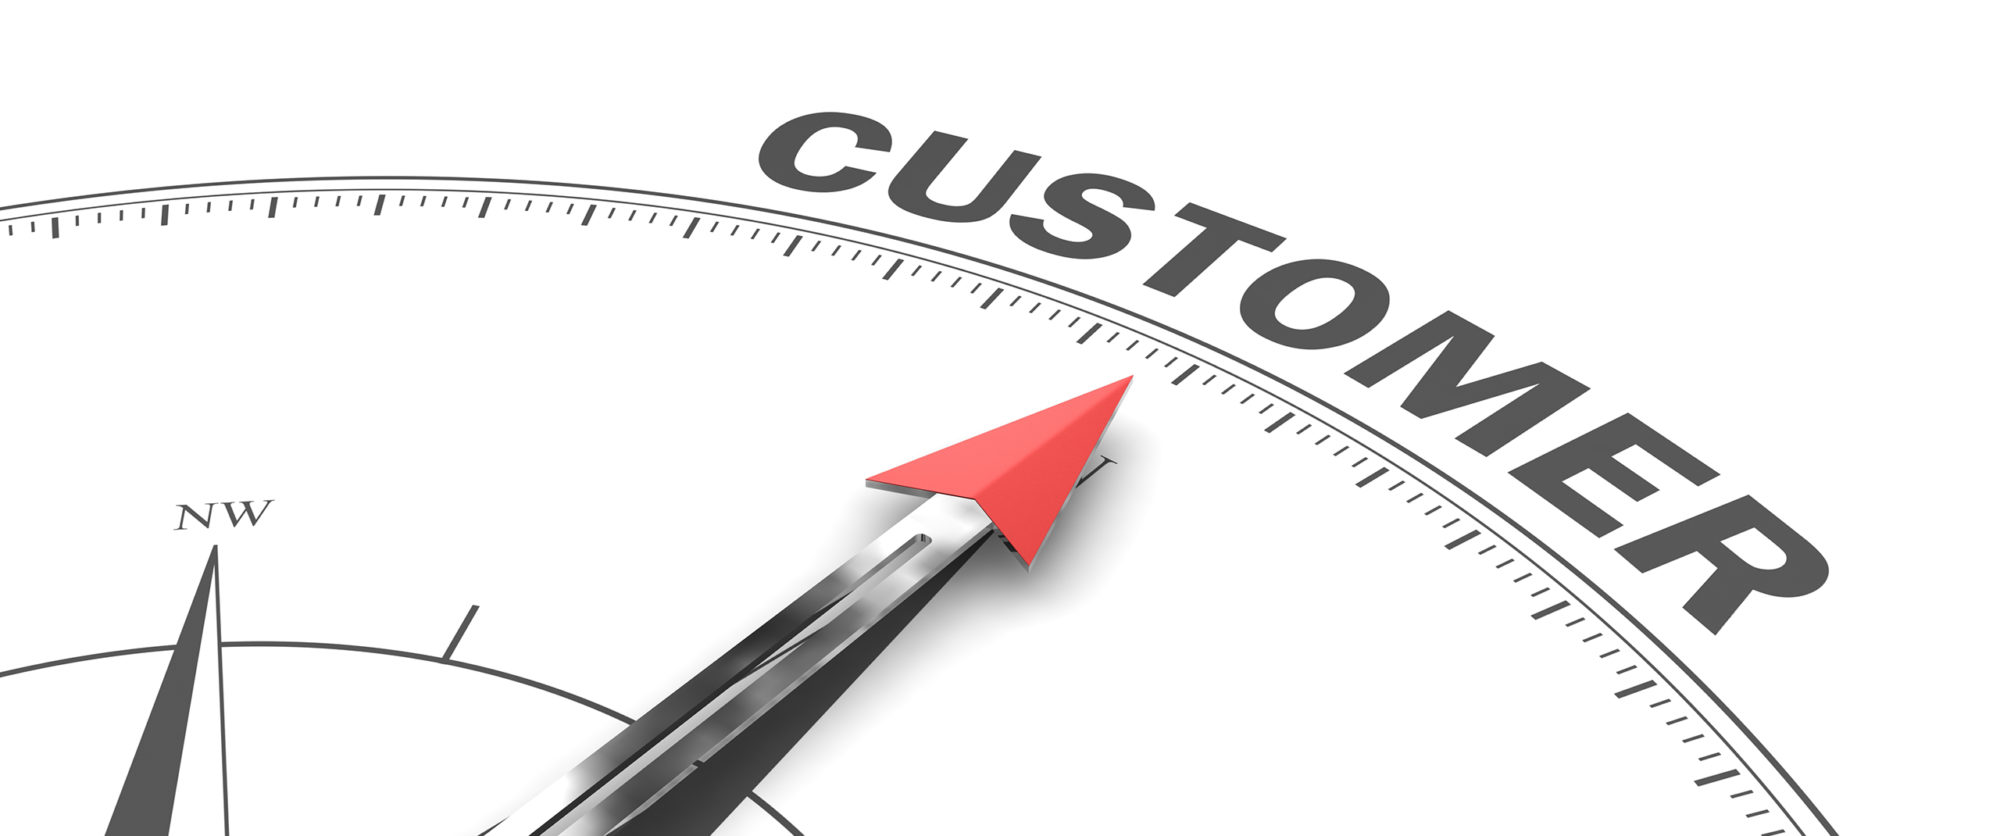 Compass pointing towards the word customer